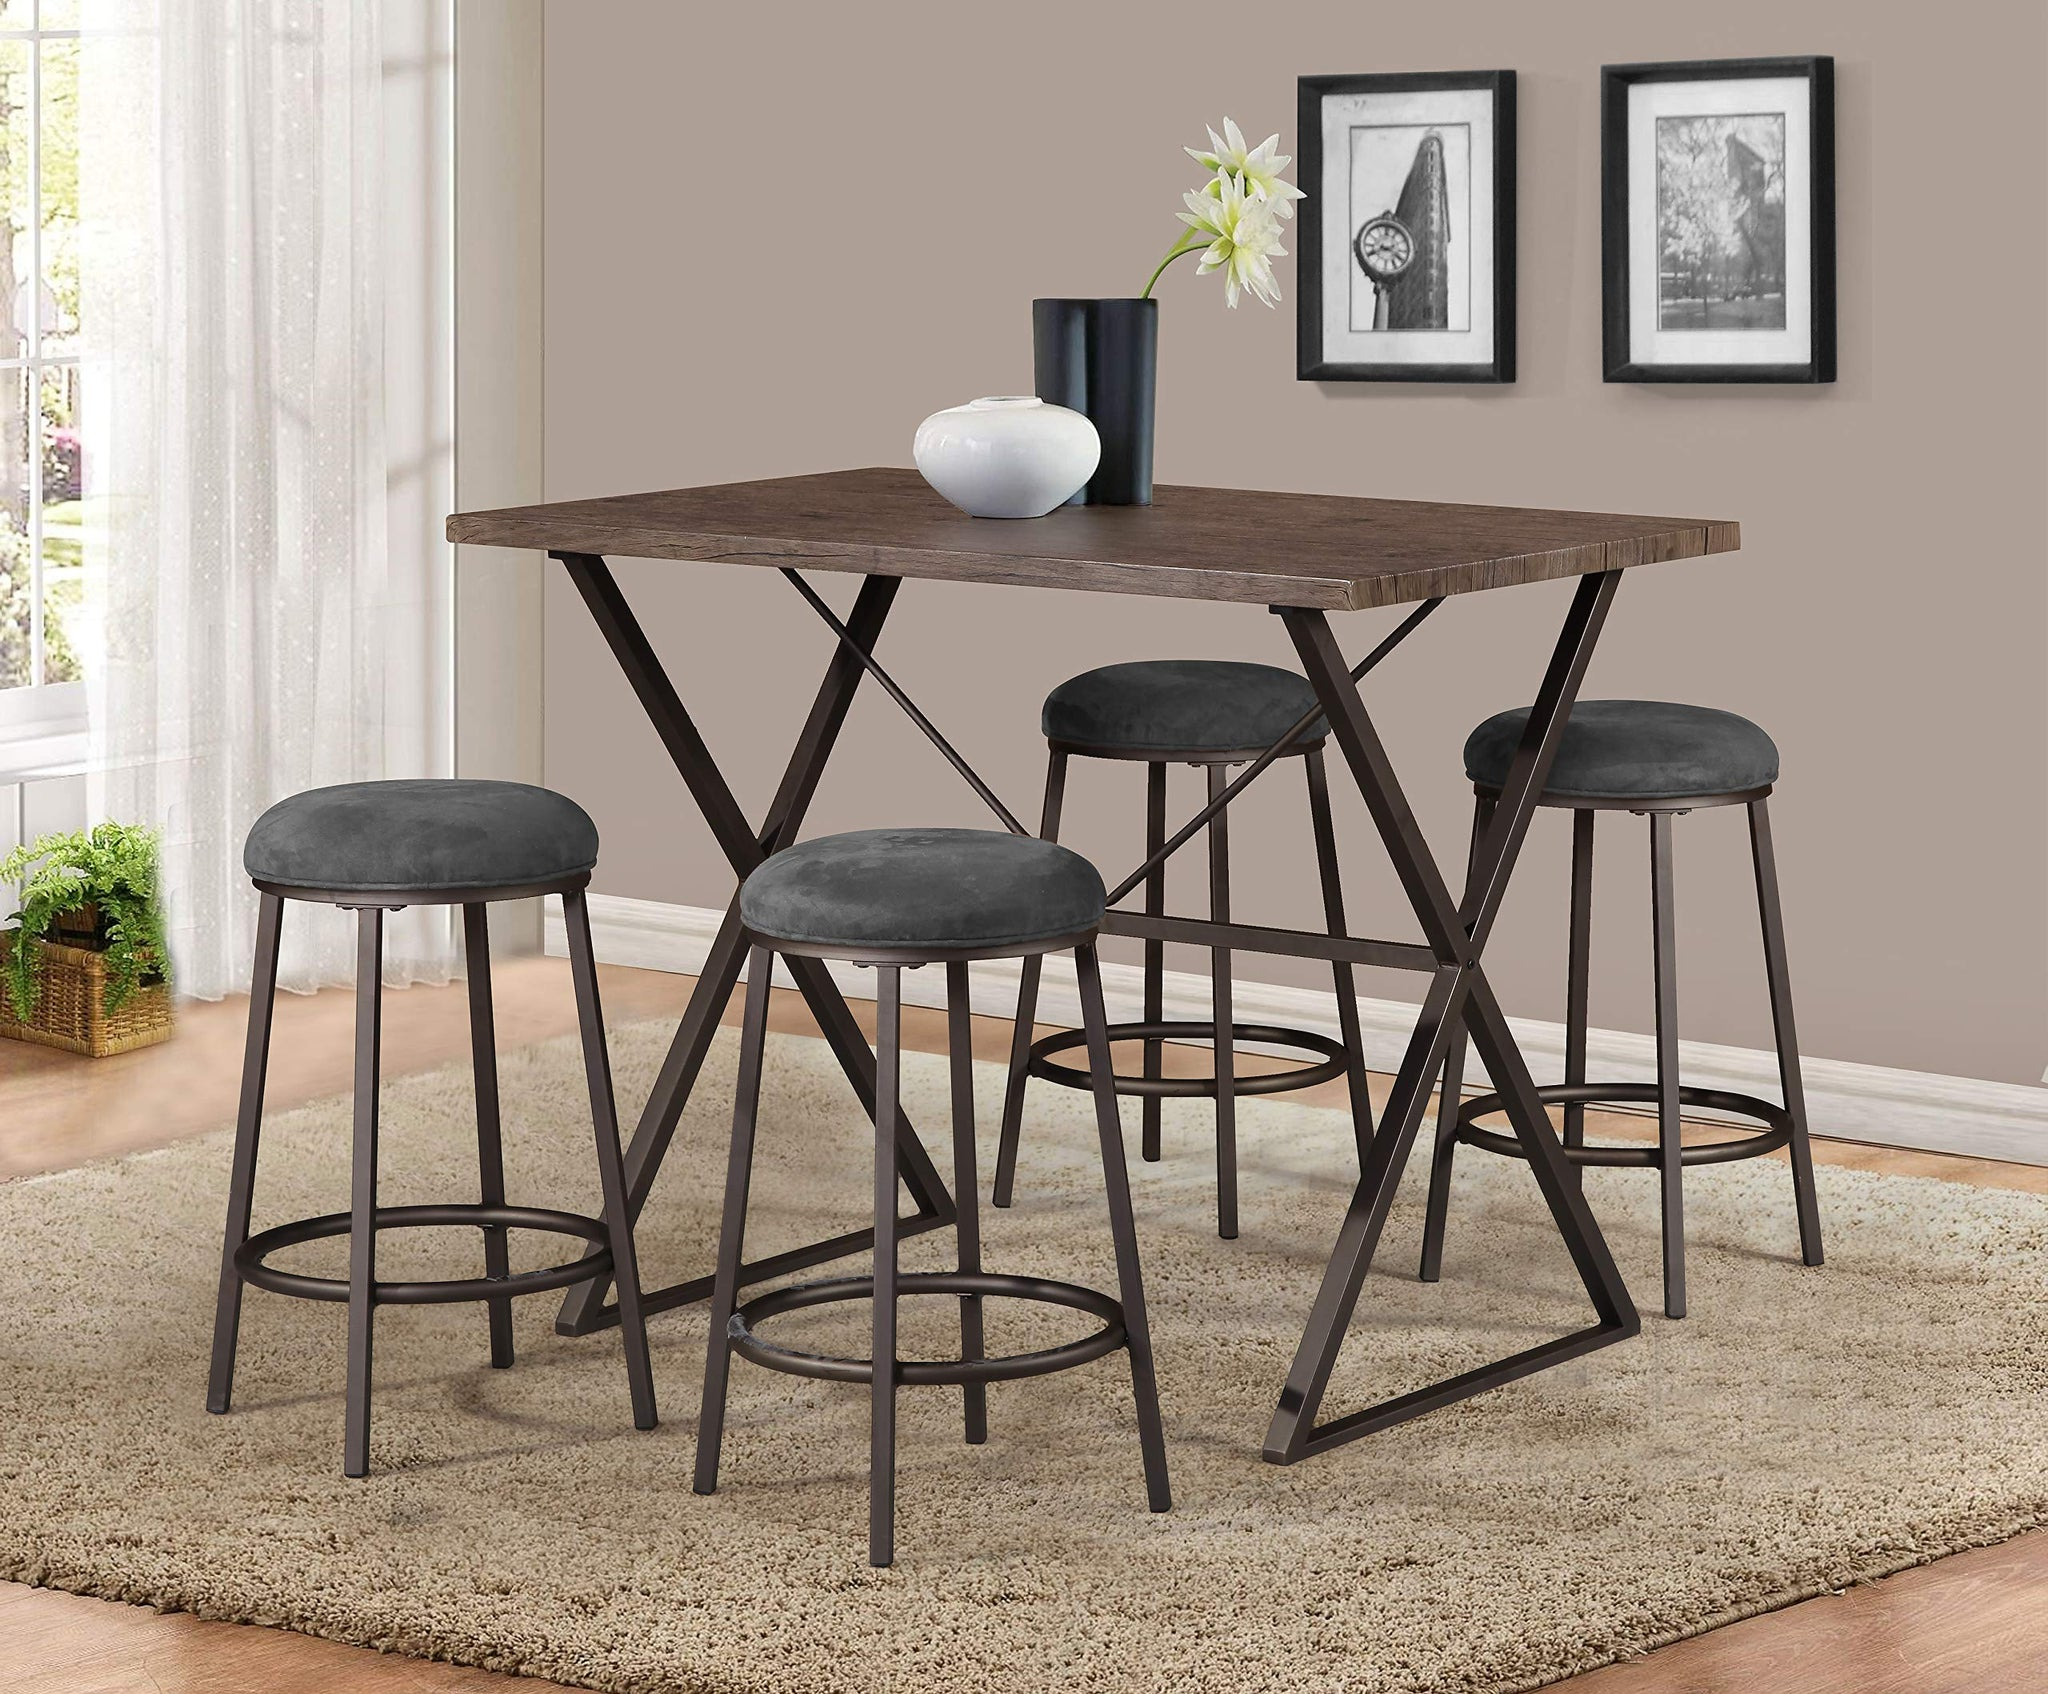 GTU Furniture 5 Piece Brown Industrial Counter Height Dining Pub Set, One Table with 4 Stools